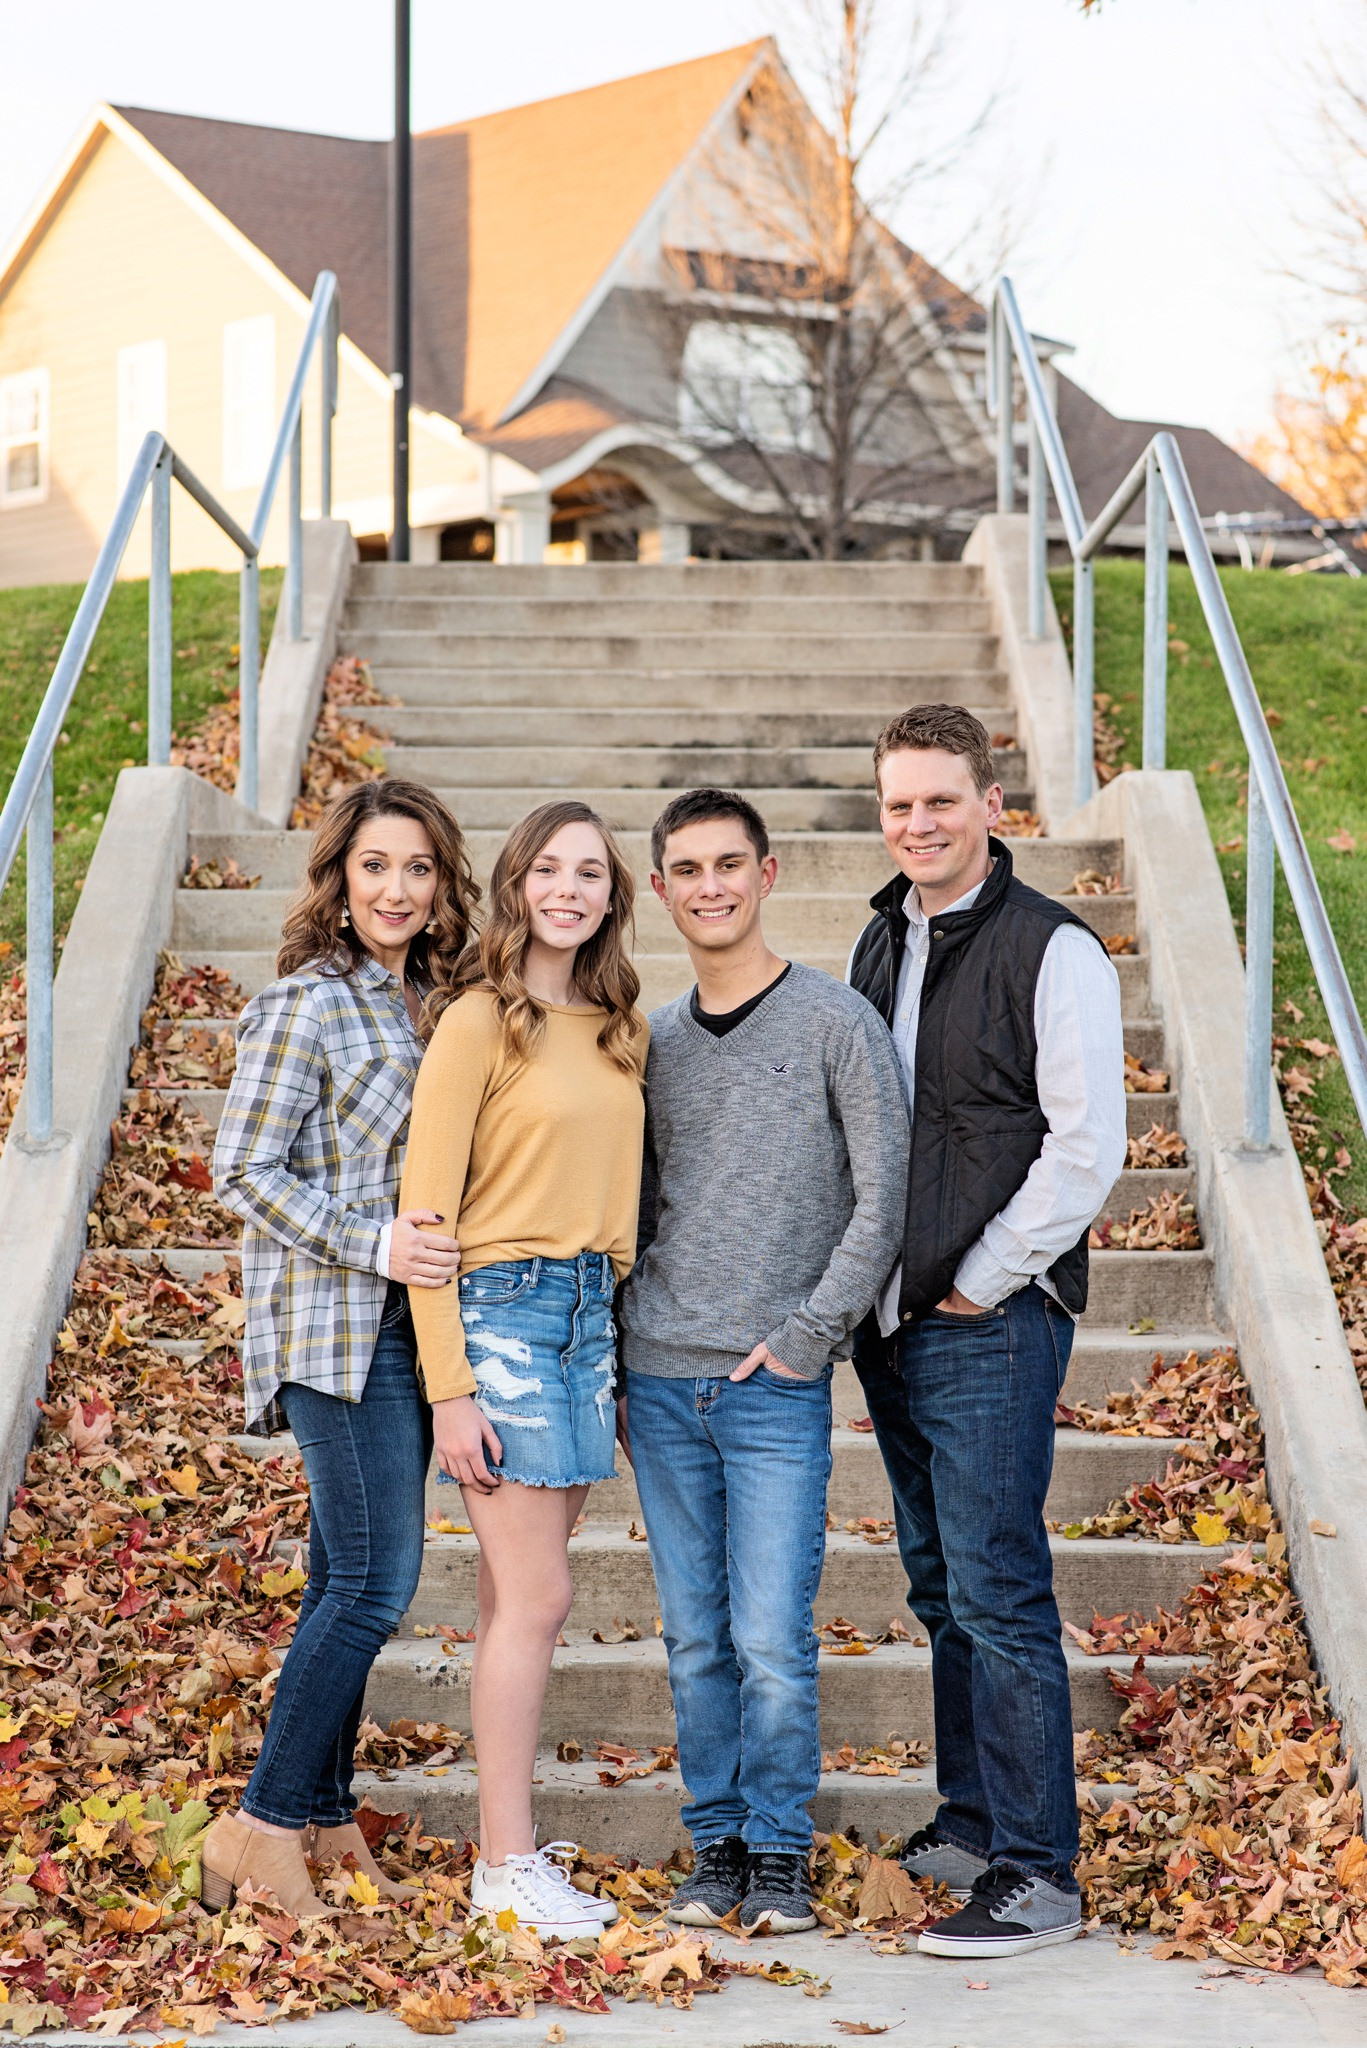 Wittwer-Family-Rotella-Photography-2018-48_WEB.jpg